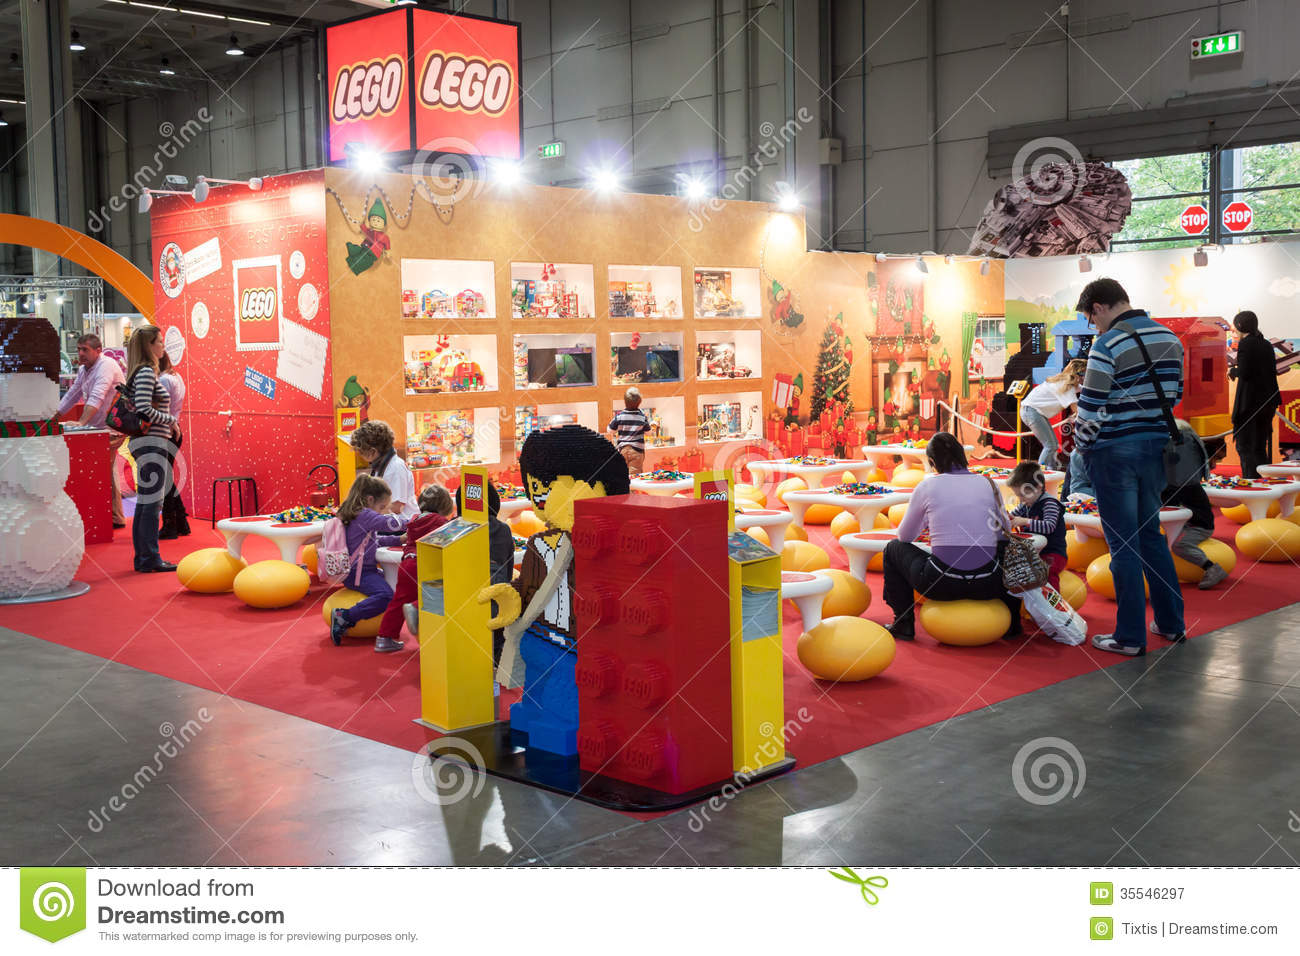 Exhibition Stand Vector : Lego stand at g come giocare in milan italy editorial